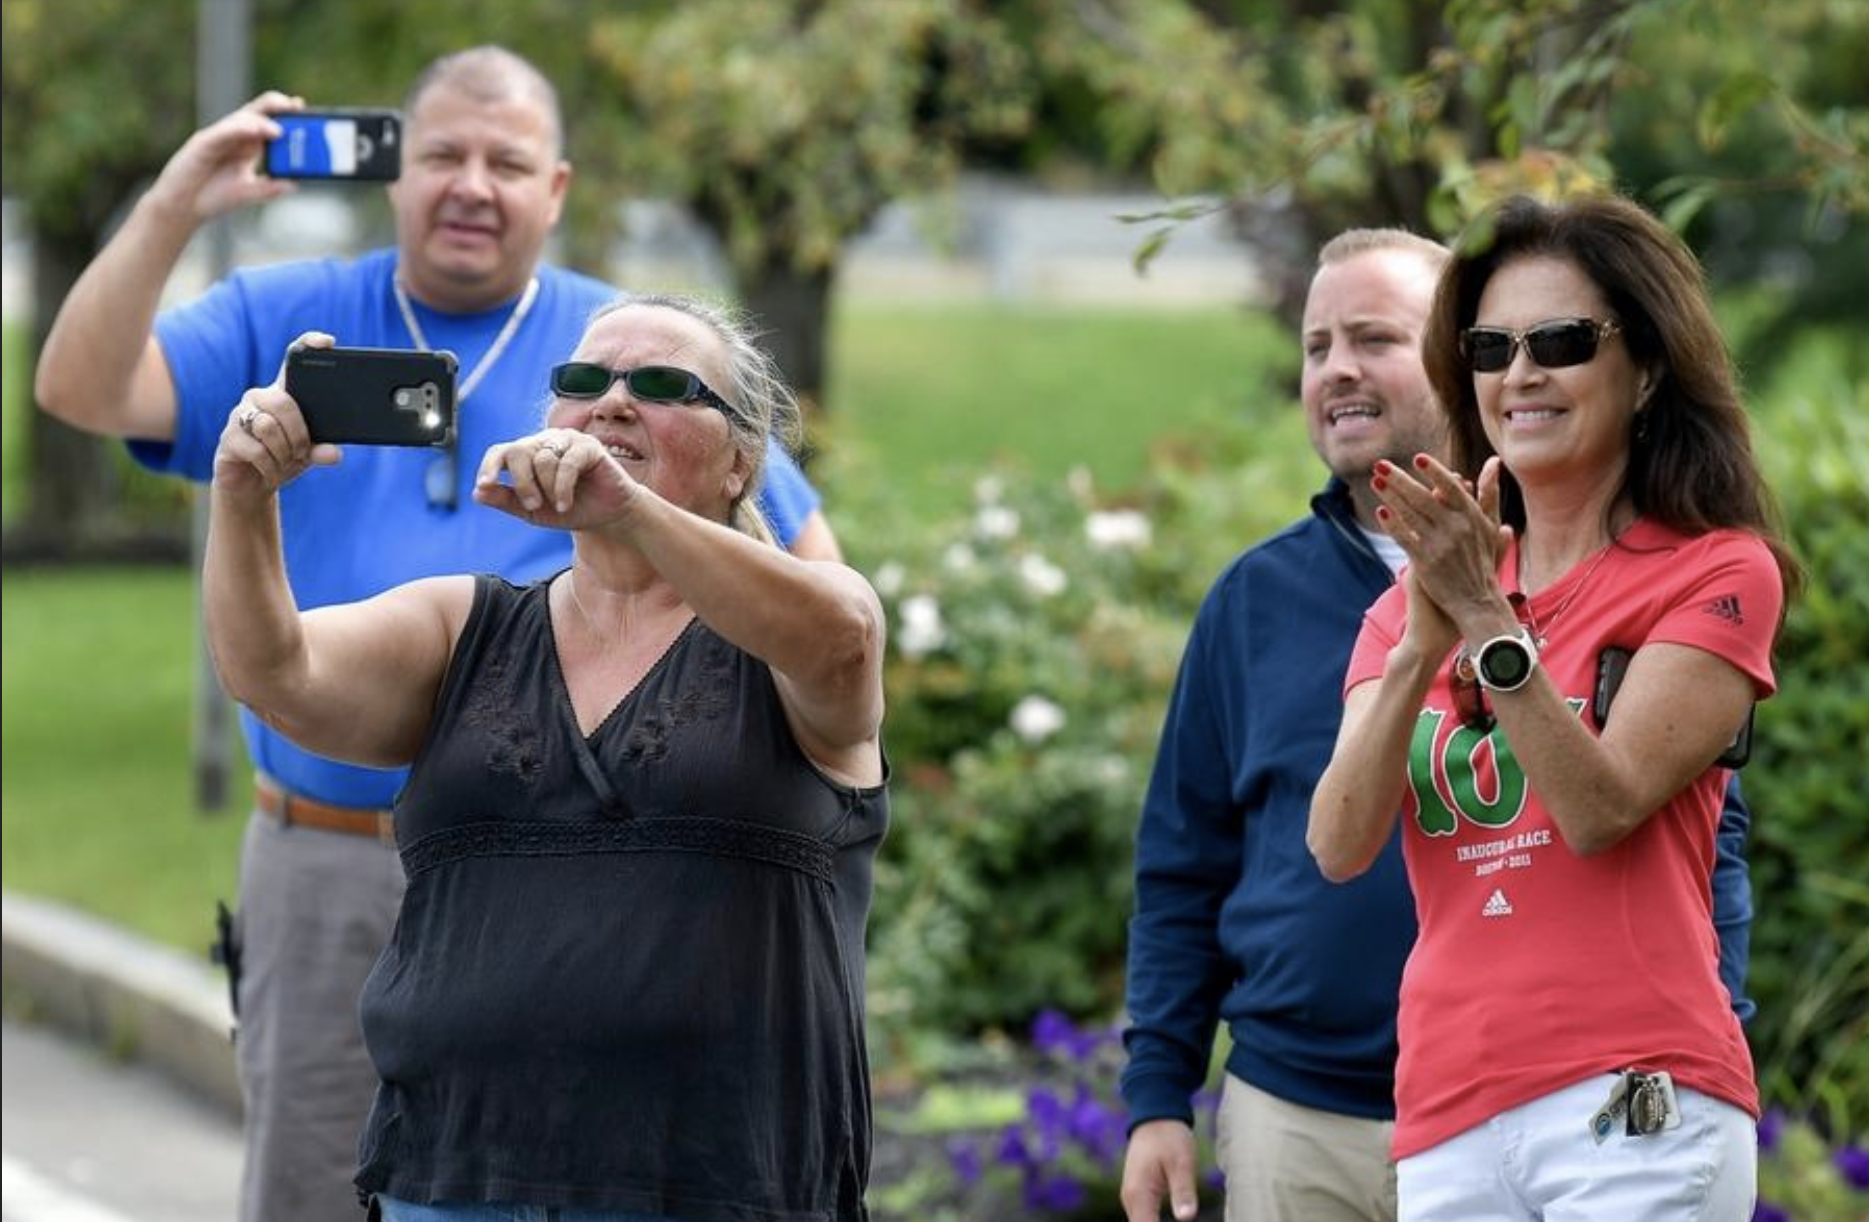 Community members capture the moment as Dave McGillivray starts his run from Medford City Hall to Fenway Park to commemorate his 40th Anniversary of running from Medford, Oregon to Medford, MA to raise money for the Jimmy Fund, on Thursday, Aug. 23, 2018. [Wicked Local Staff Photo / David Sokol]